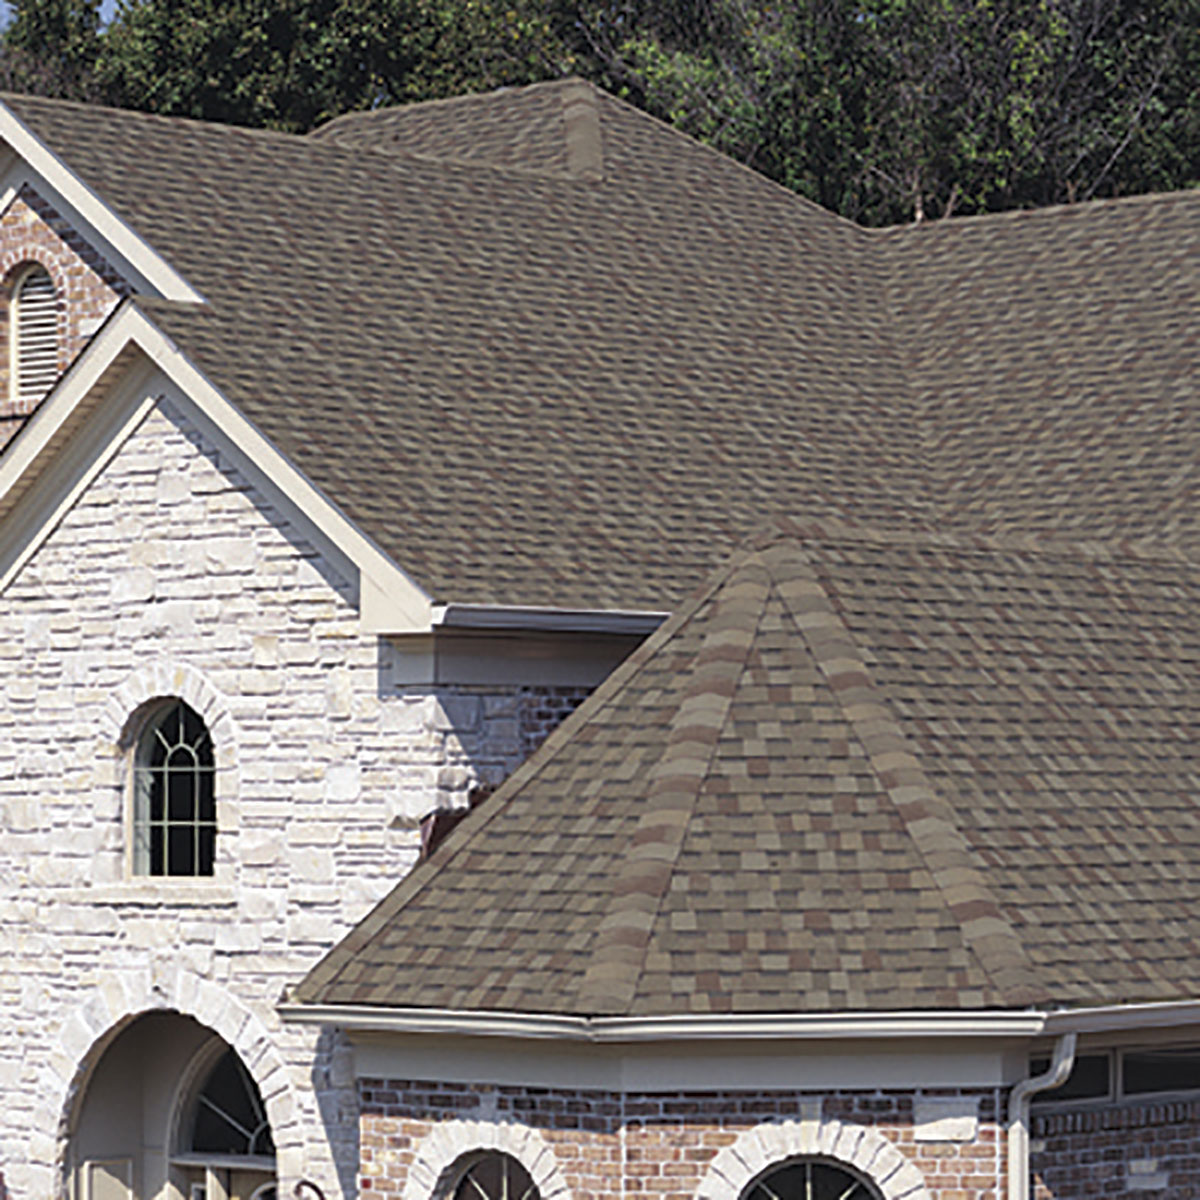 Beautiful Homes Start with Heritage Shingles: Heritage Shingles | Heritage Roofing Shingles | How To Install Cedar Shingles